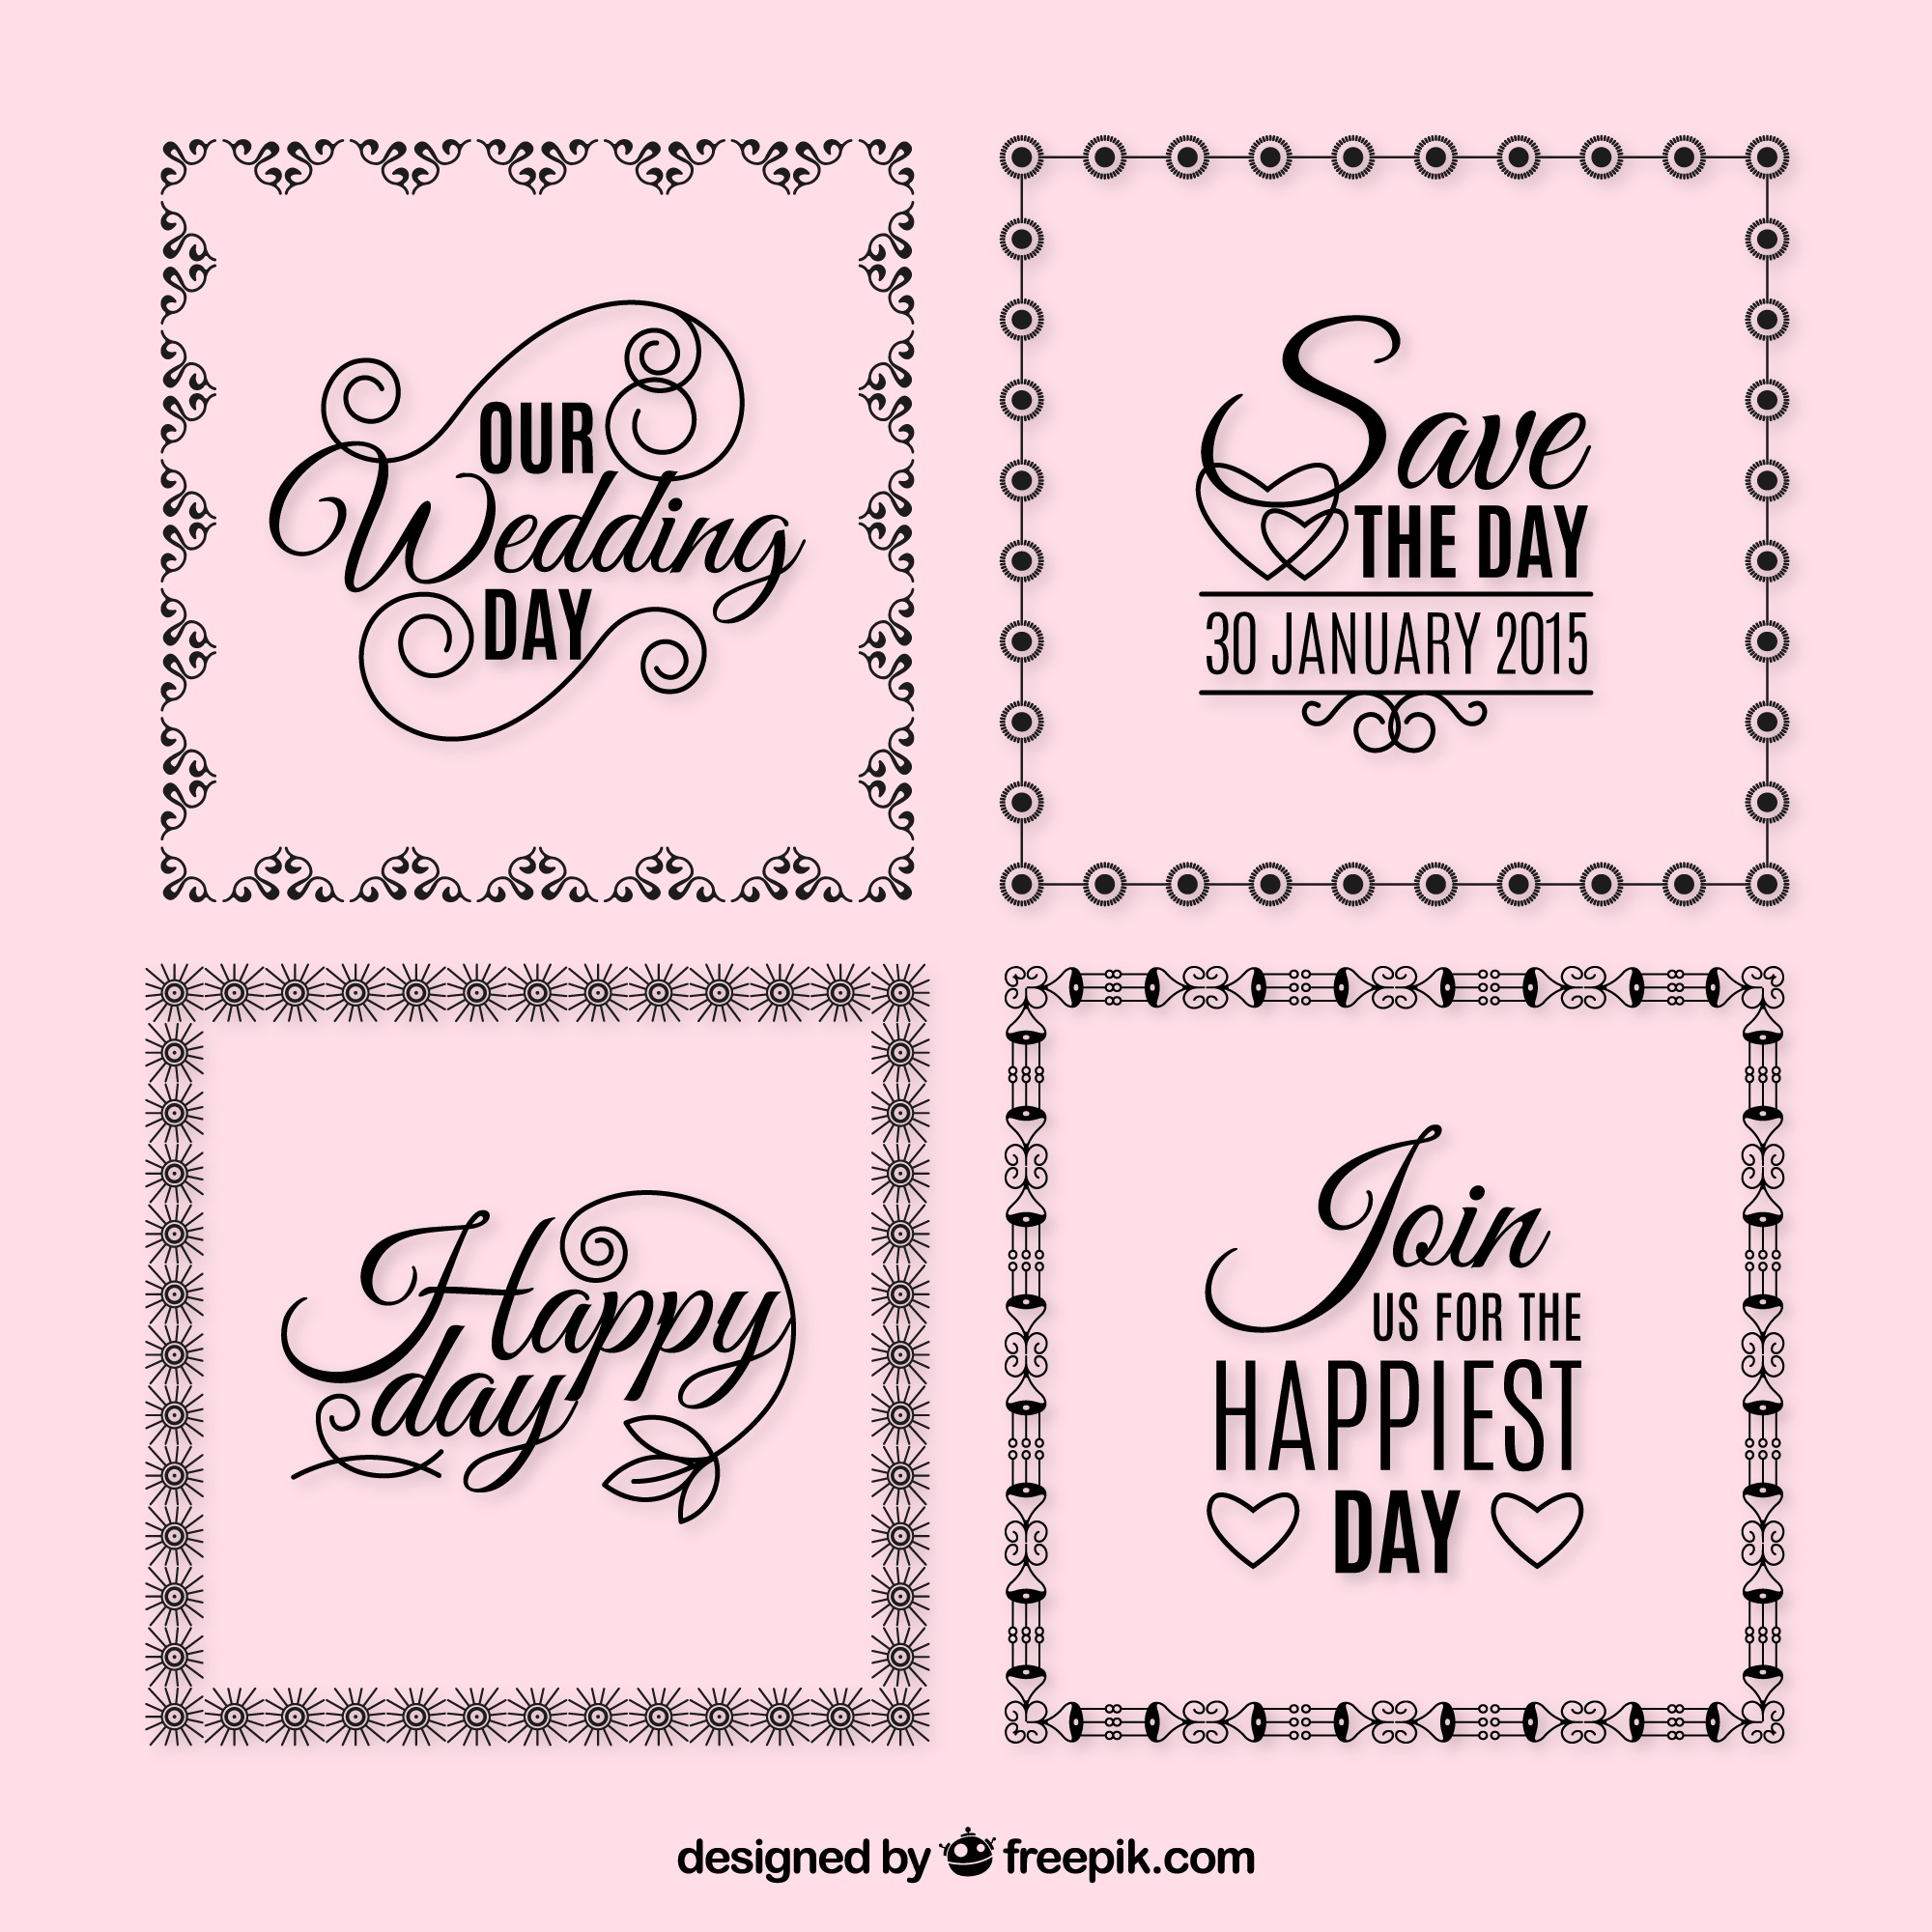 Wedding frames with phrases